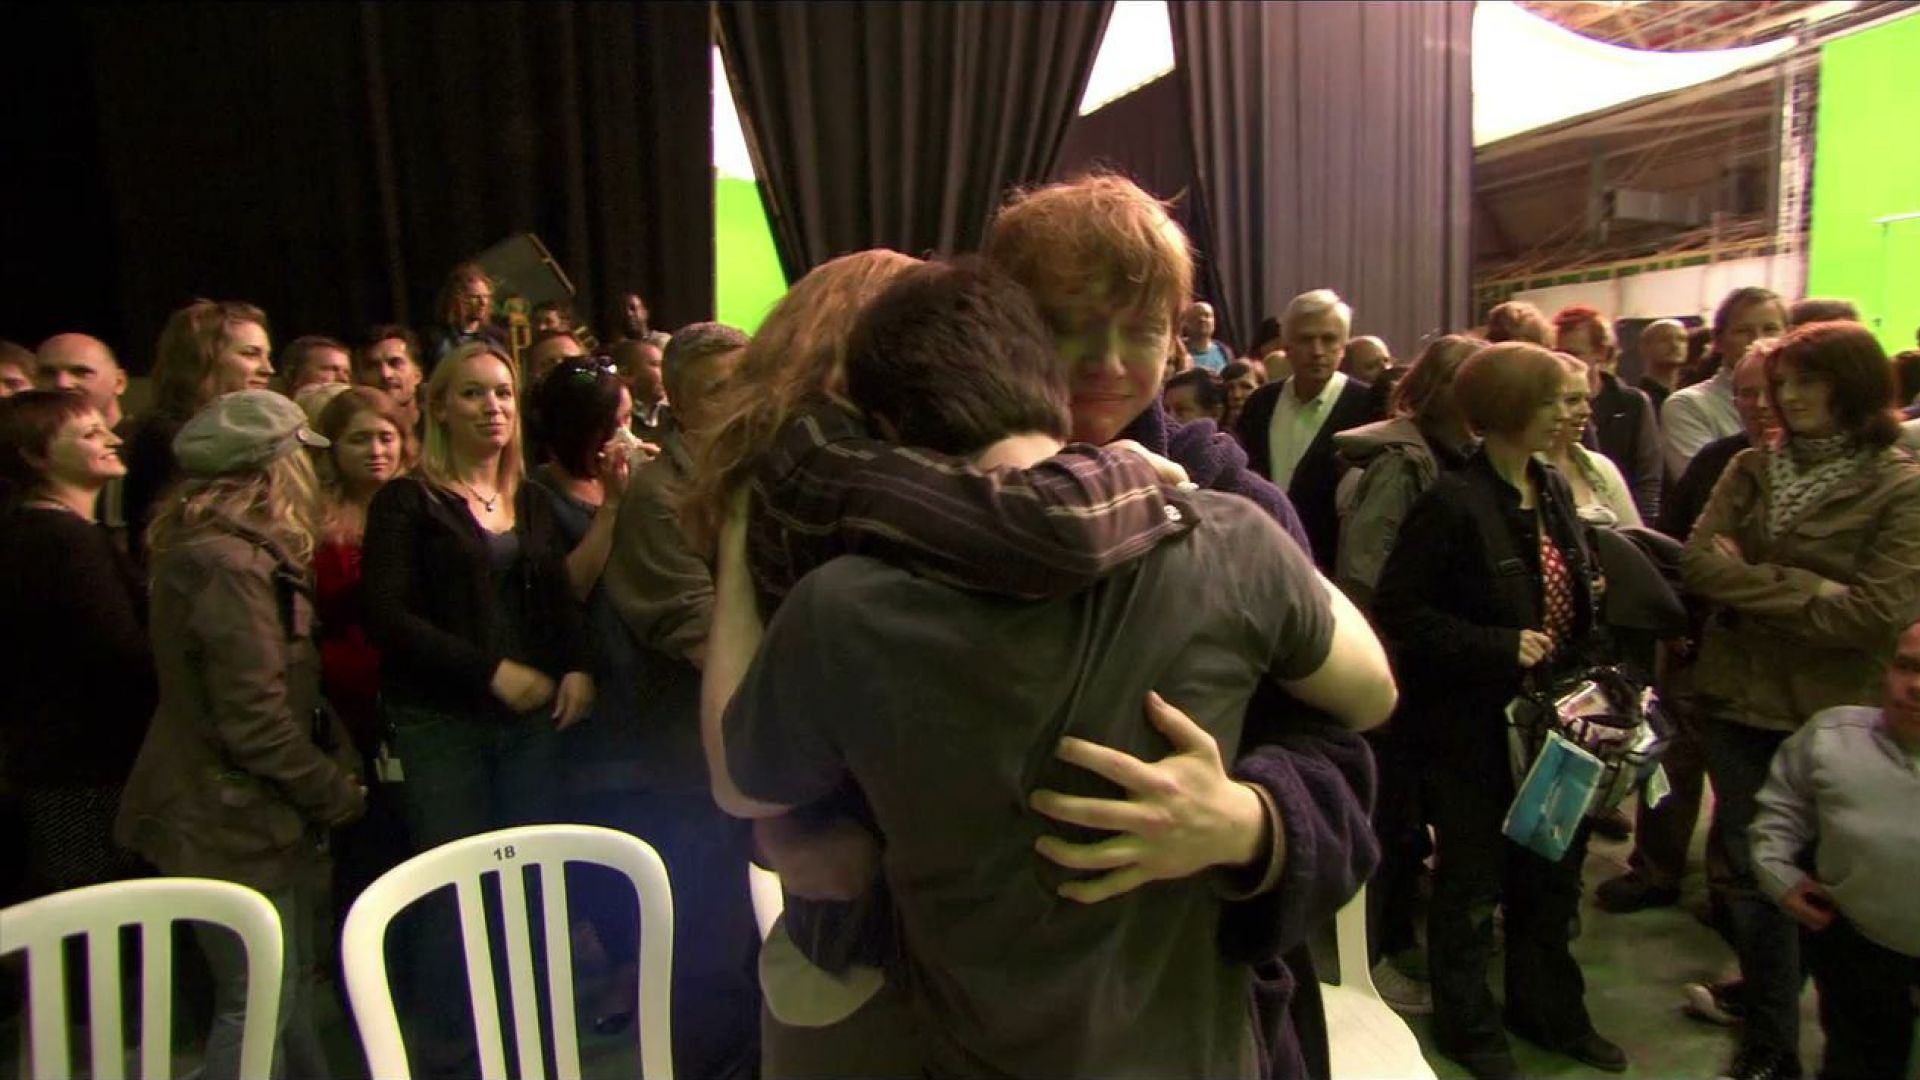 Last day on set. The Harry Potter cast and crew say goodbye